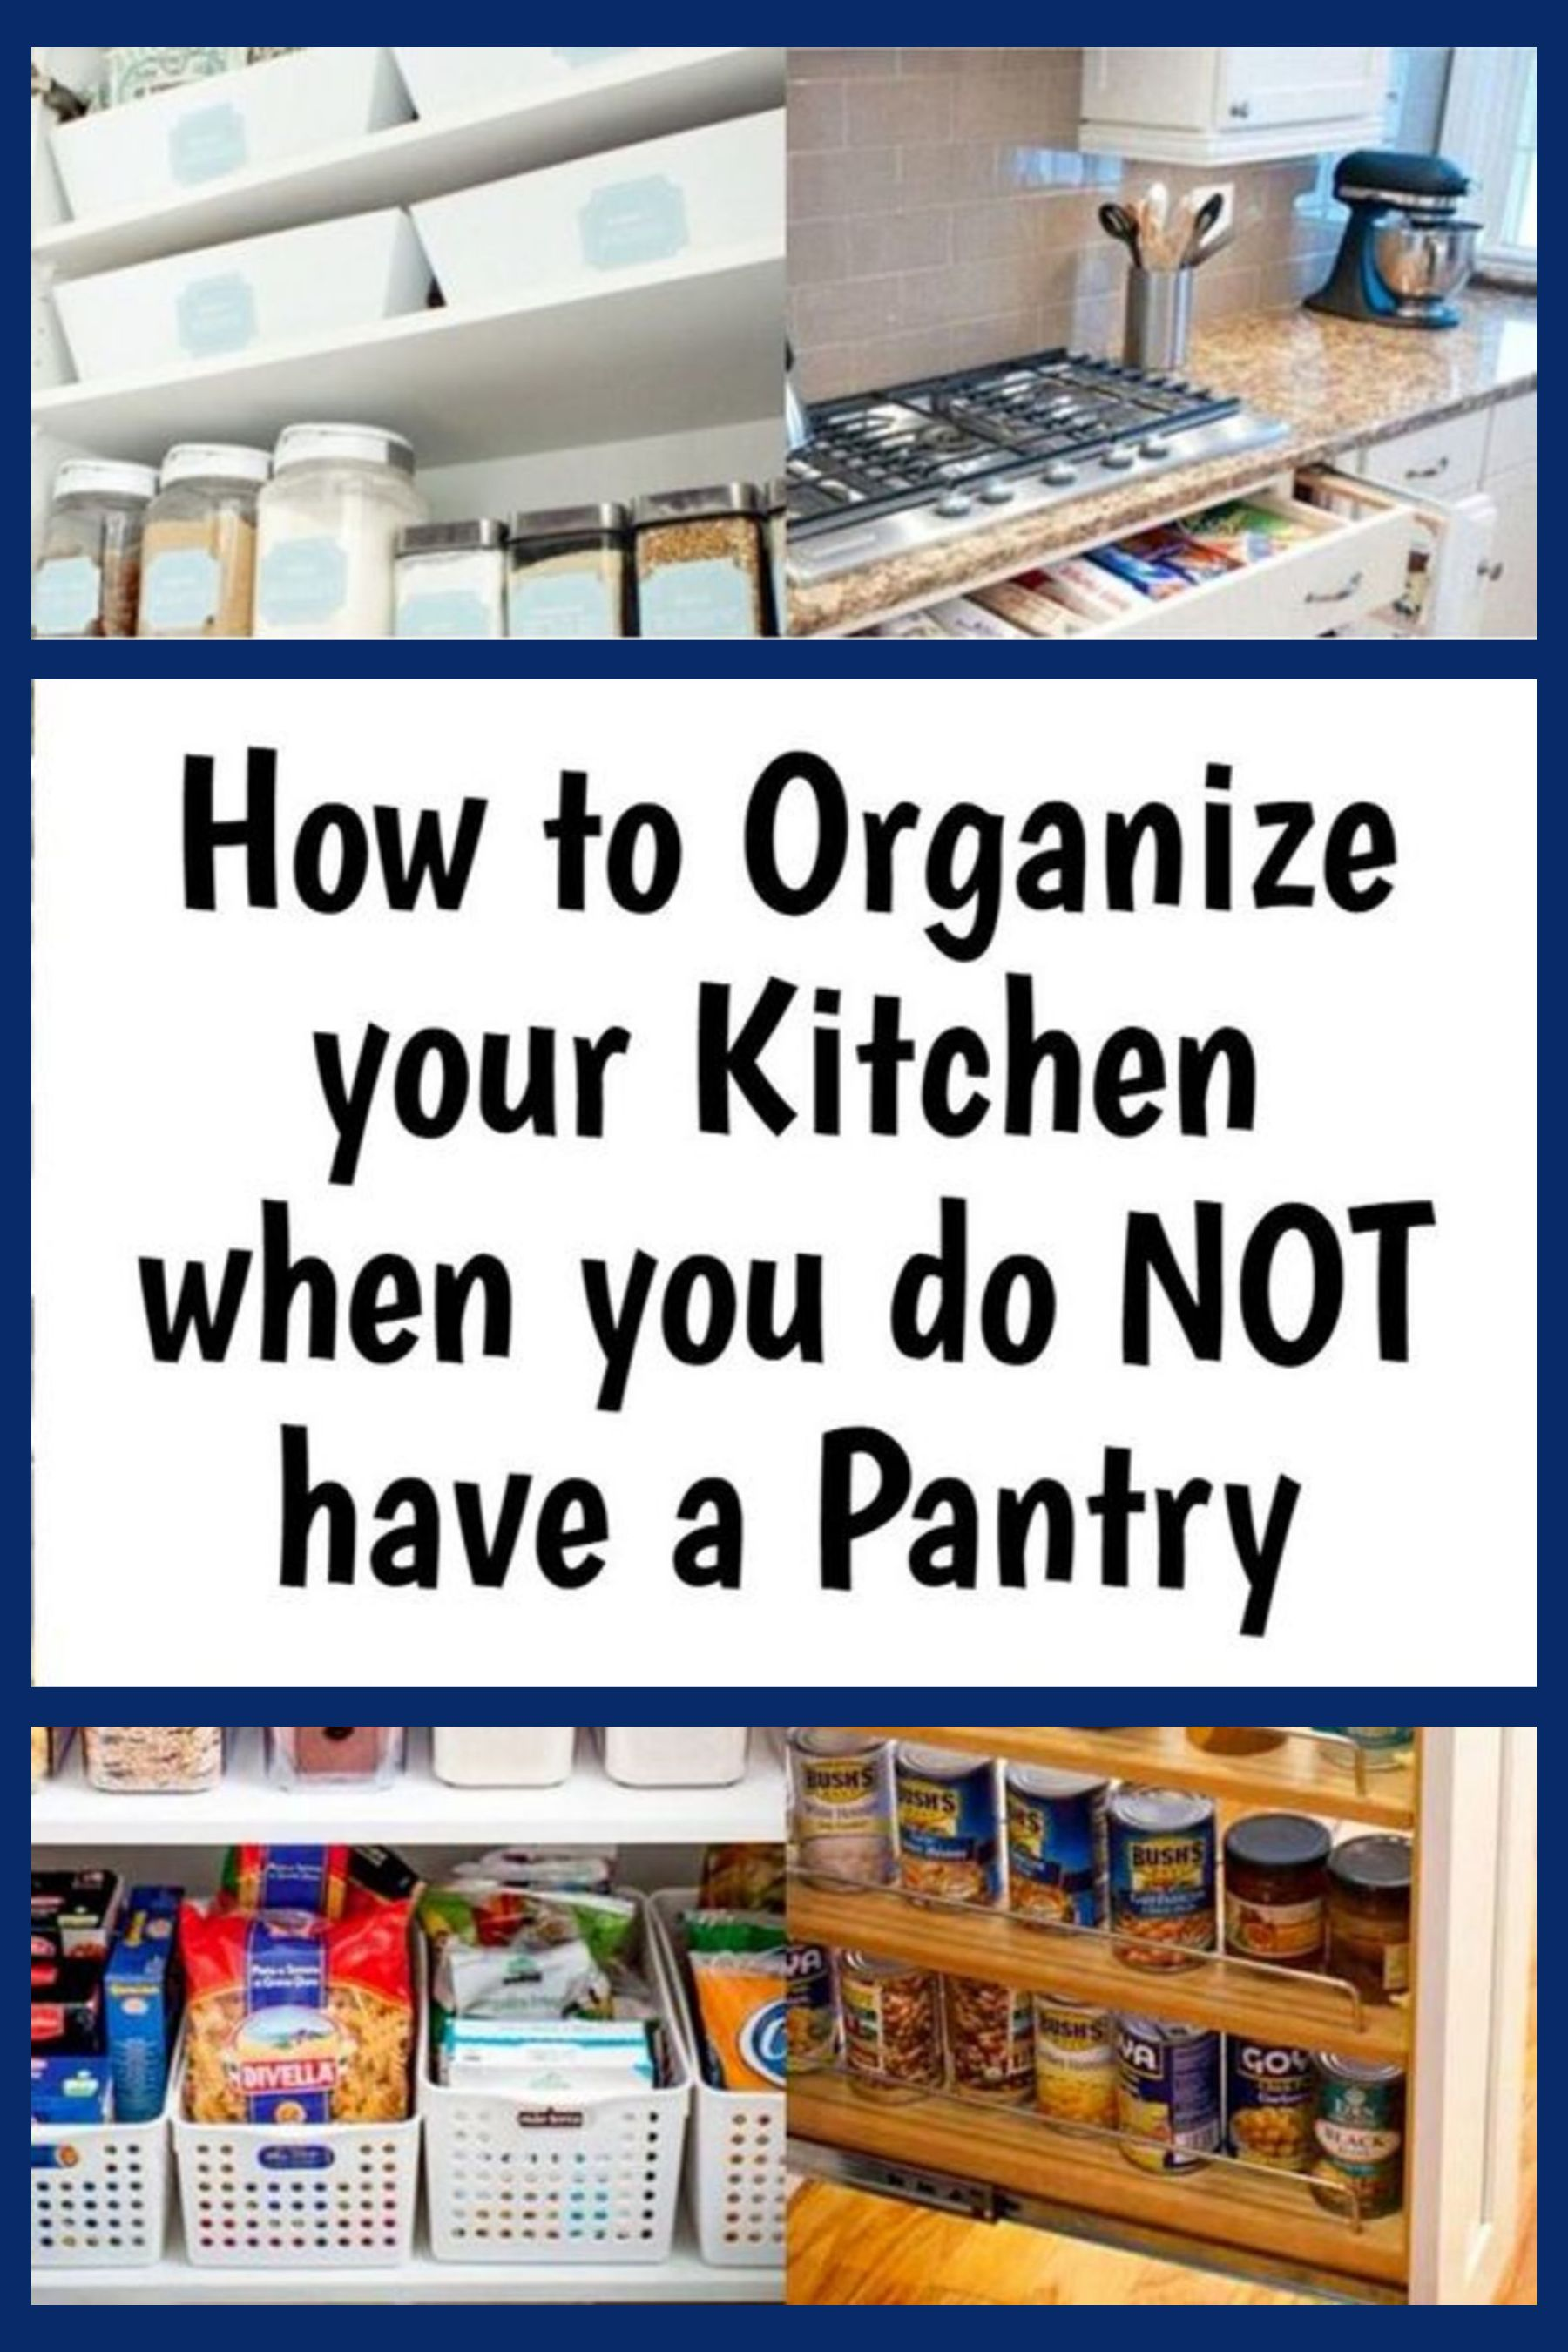 No Pantry How To Organize A Small Kitchen Without A Pantry Decluttering Your Life Kitchen Without Pantry Small Pantry Organization Small Kitchen Pantry